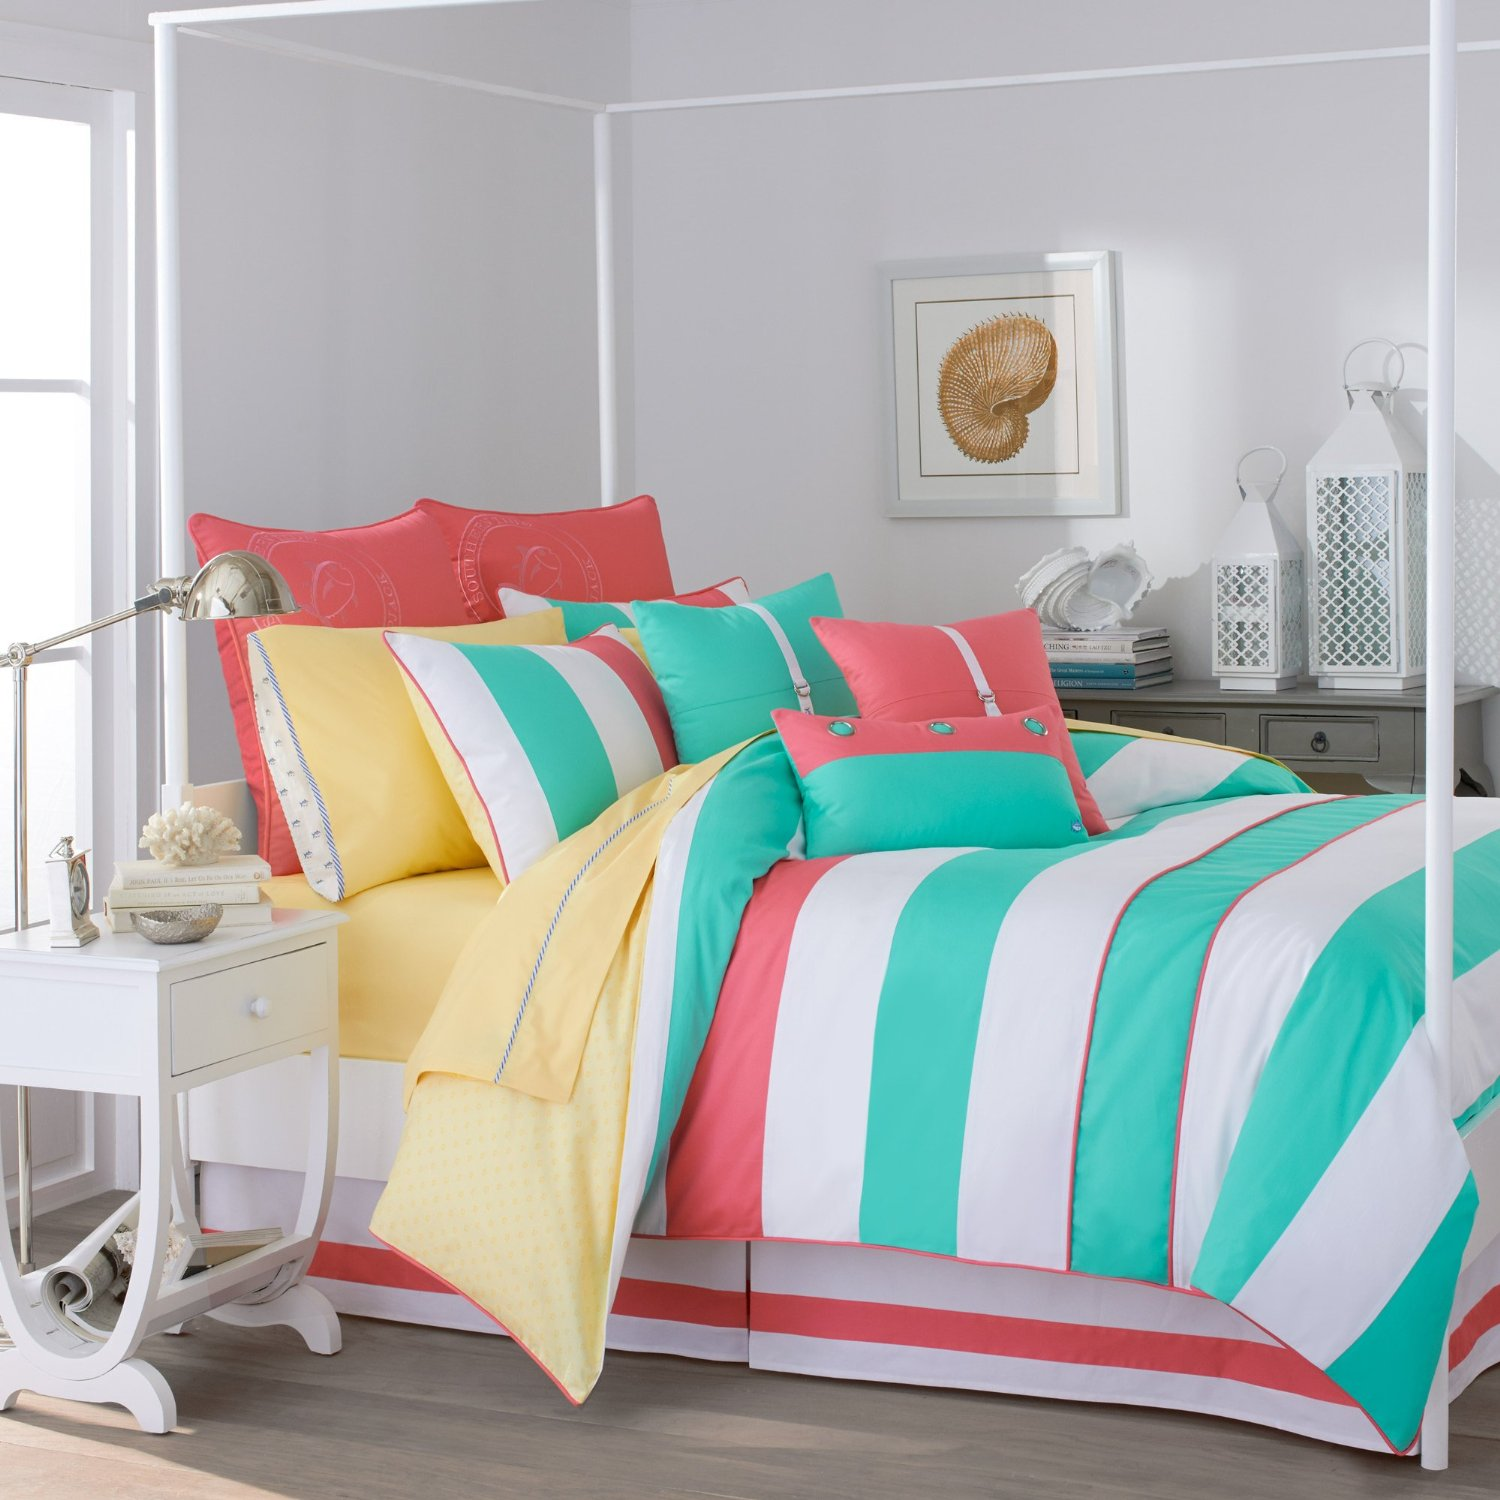 Colorful Stripe Bedding For Teen Girls (Image 3 of 10)